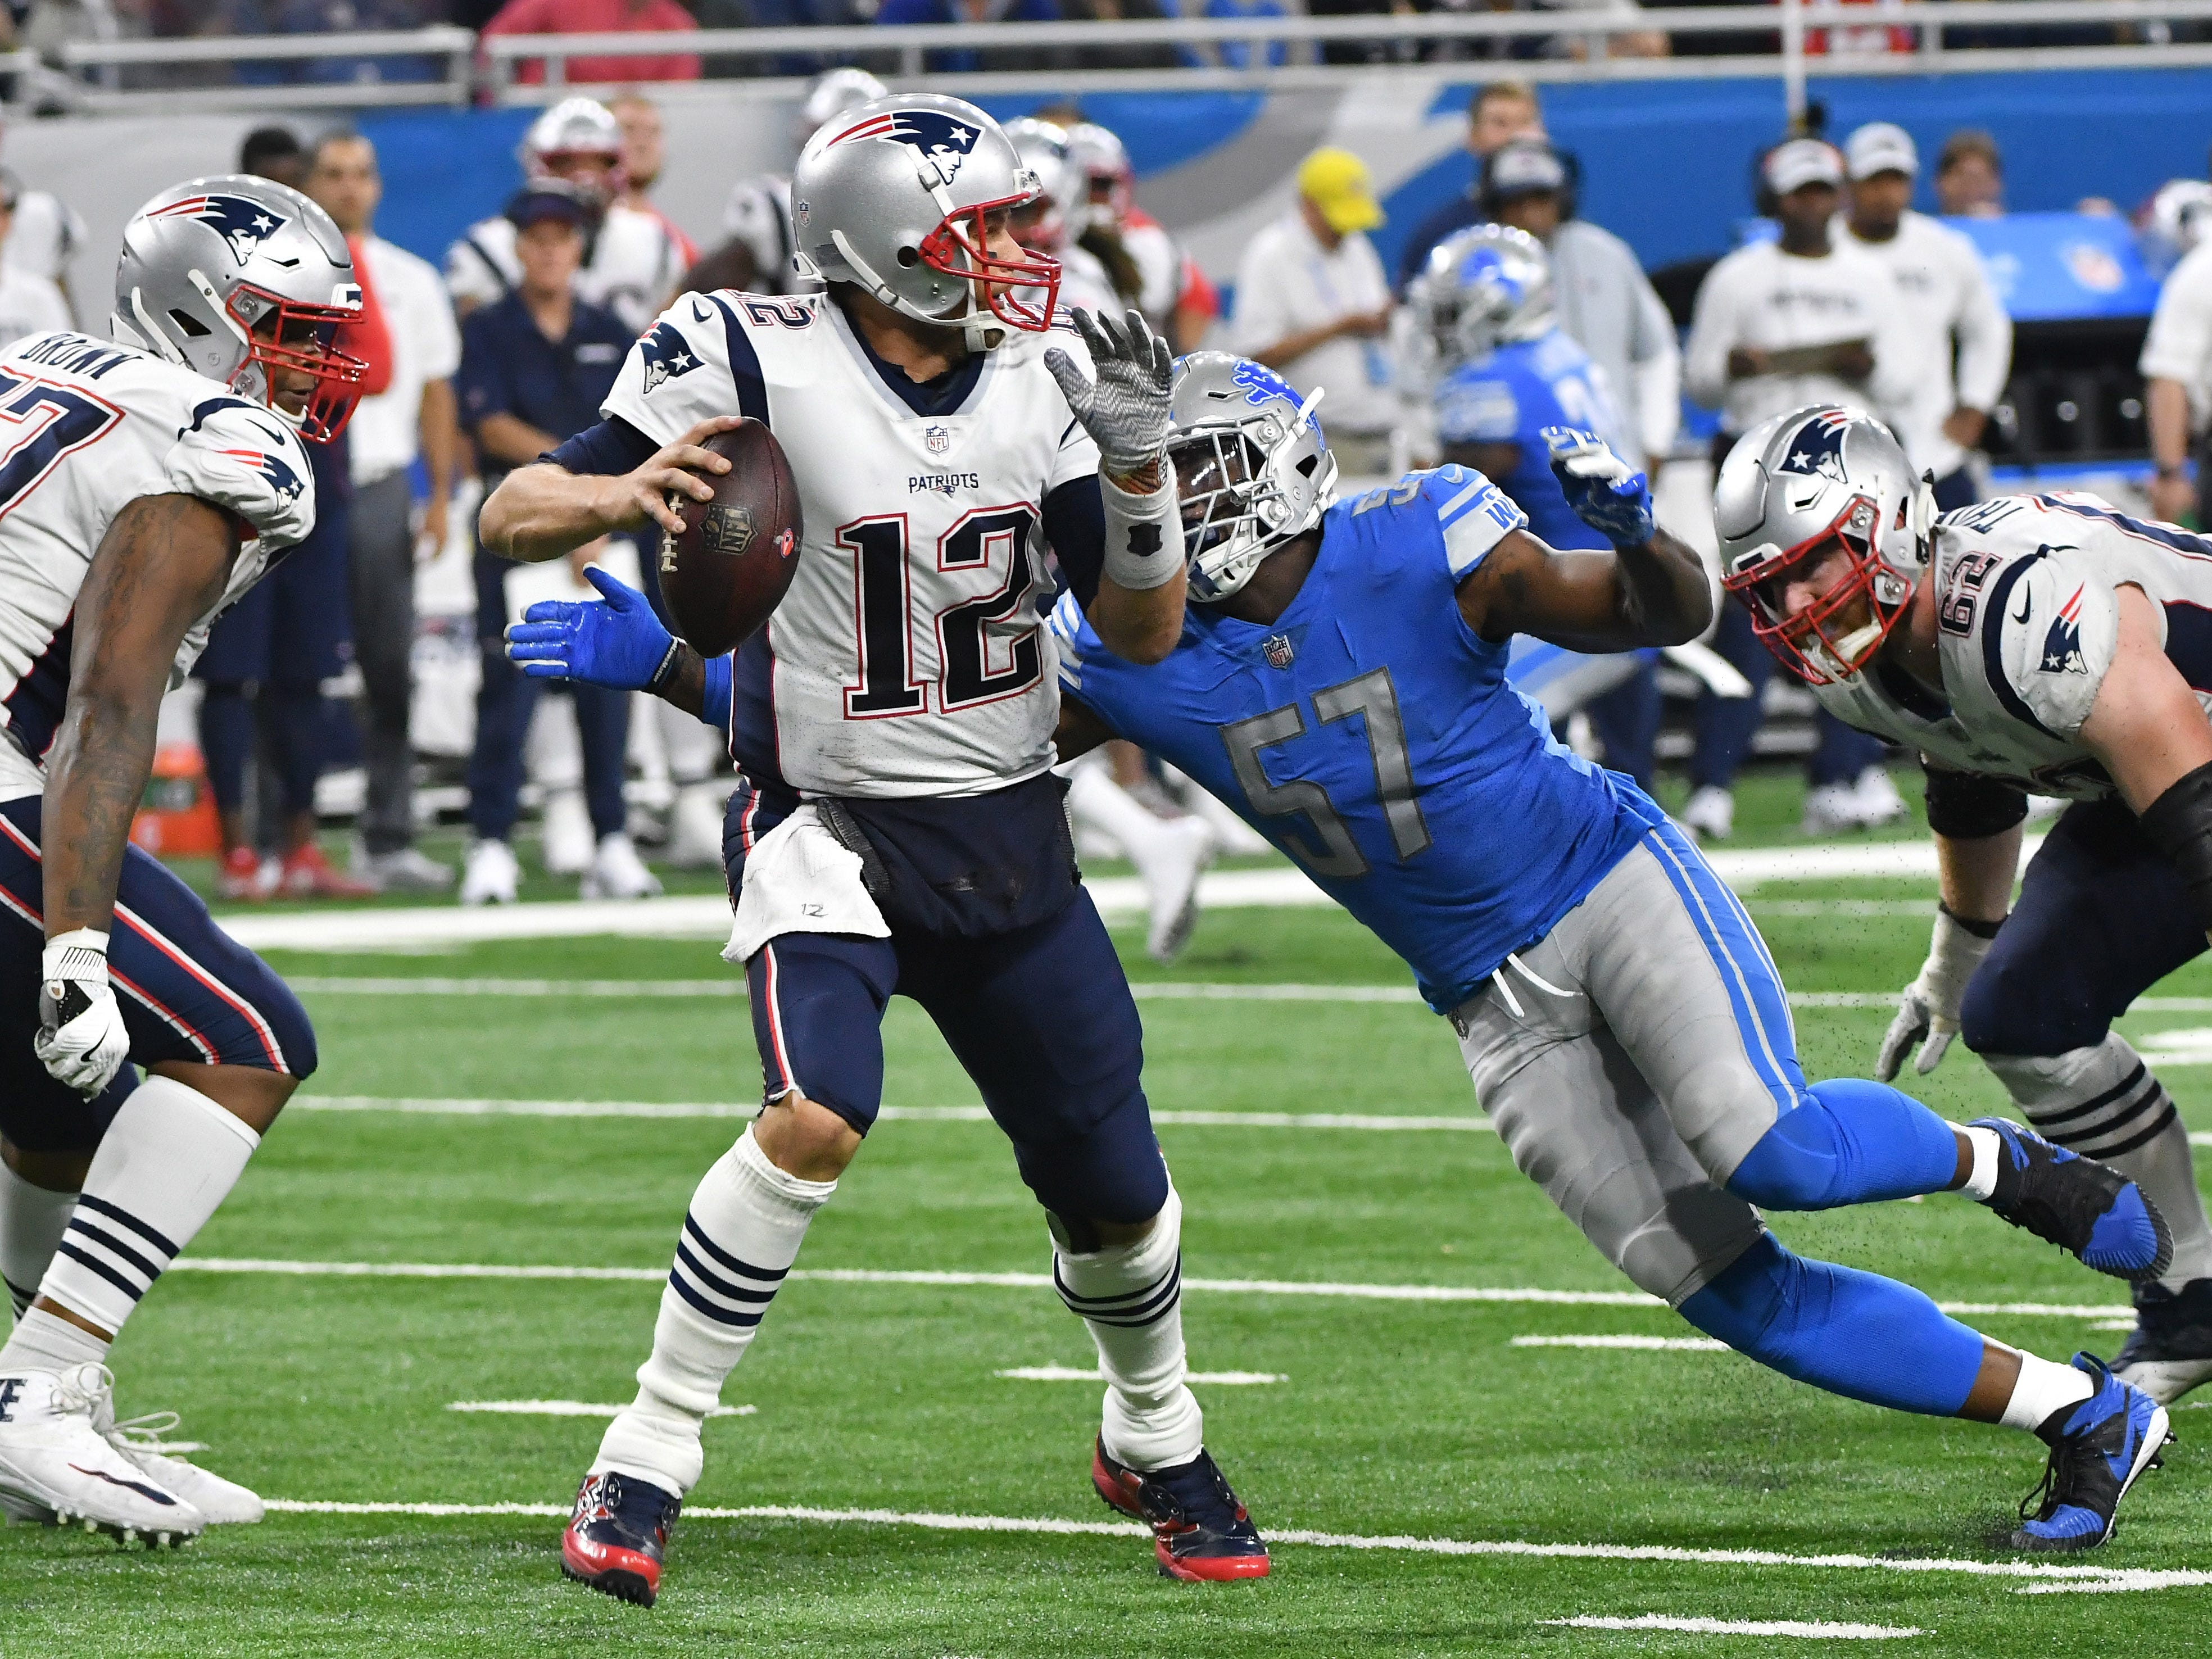 Patriots' Tom Brady is sacked by Lions' Eli Harold in the 4th quarter.